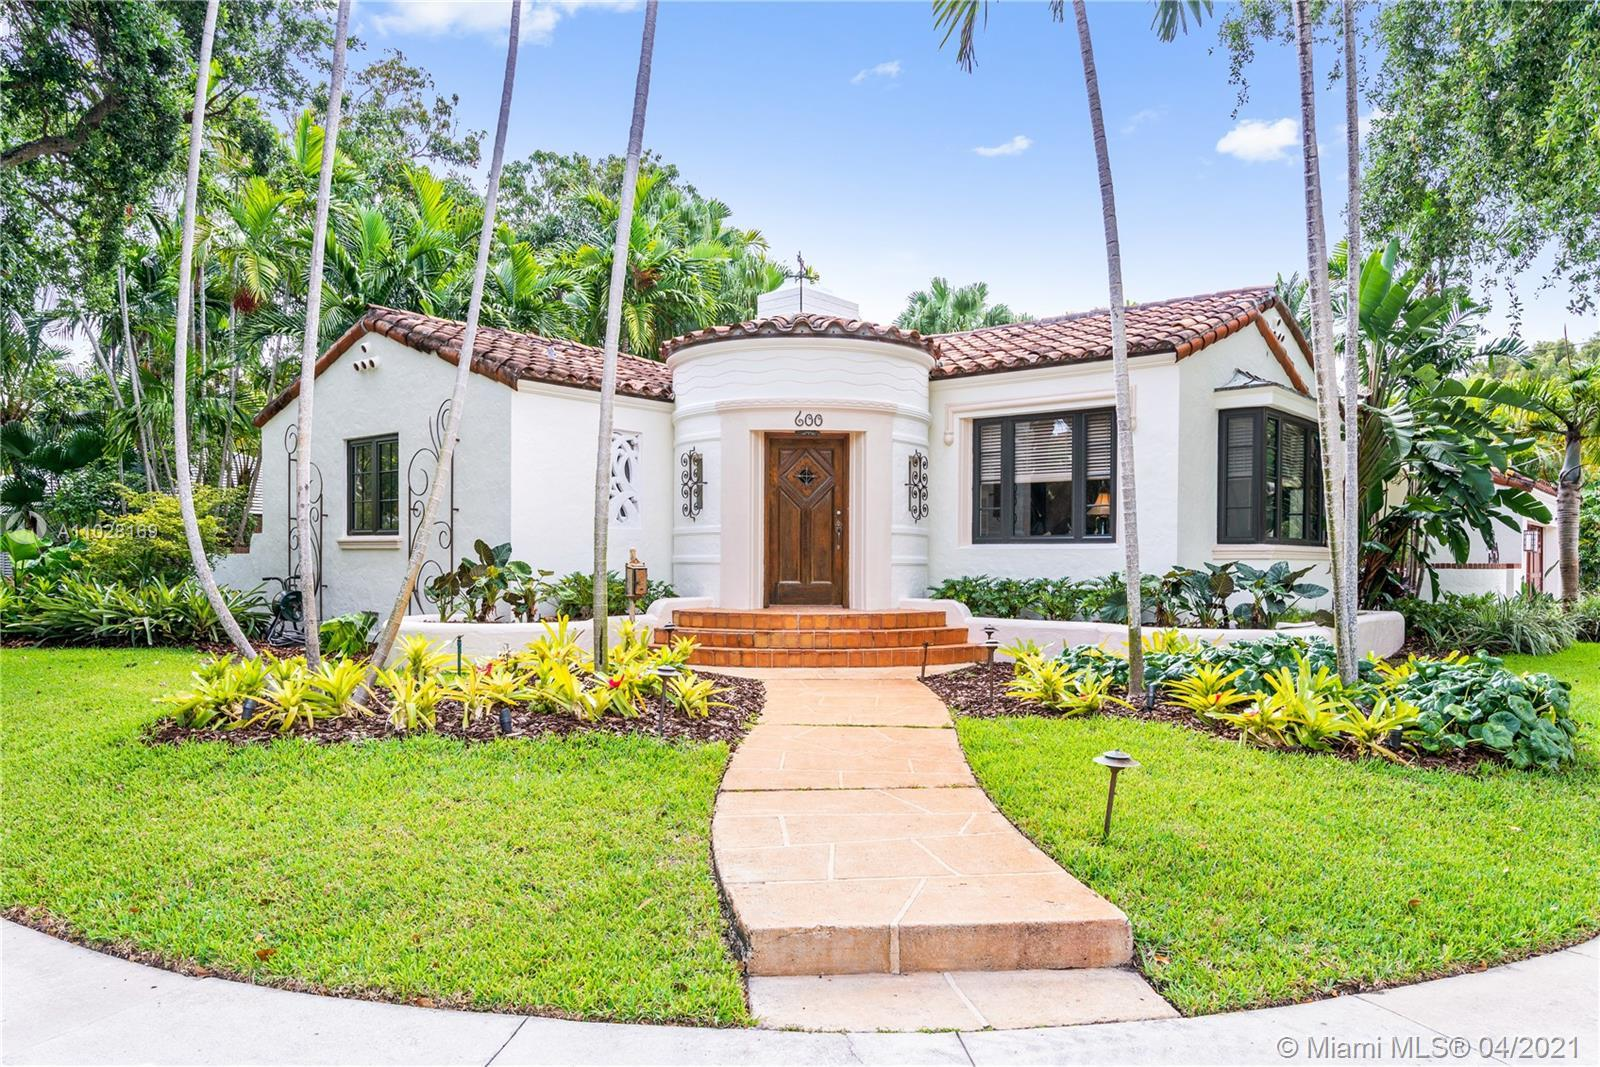 Welcome to this 3 Bed, 2.5 Bath Mediterranean / Art Deco pool home in Morningside, one of Miami's mo